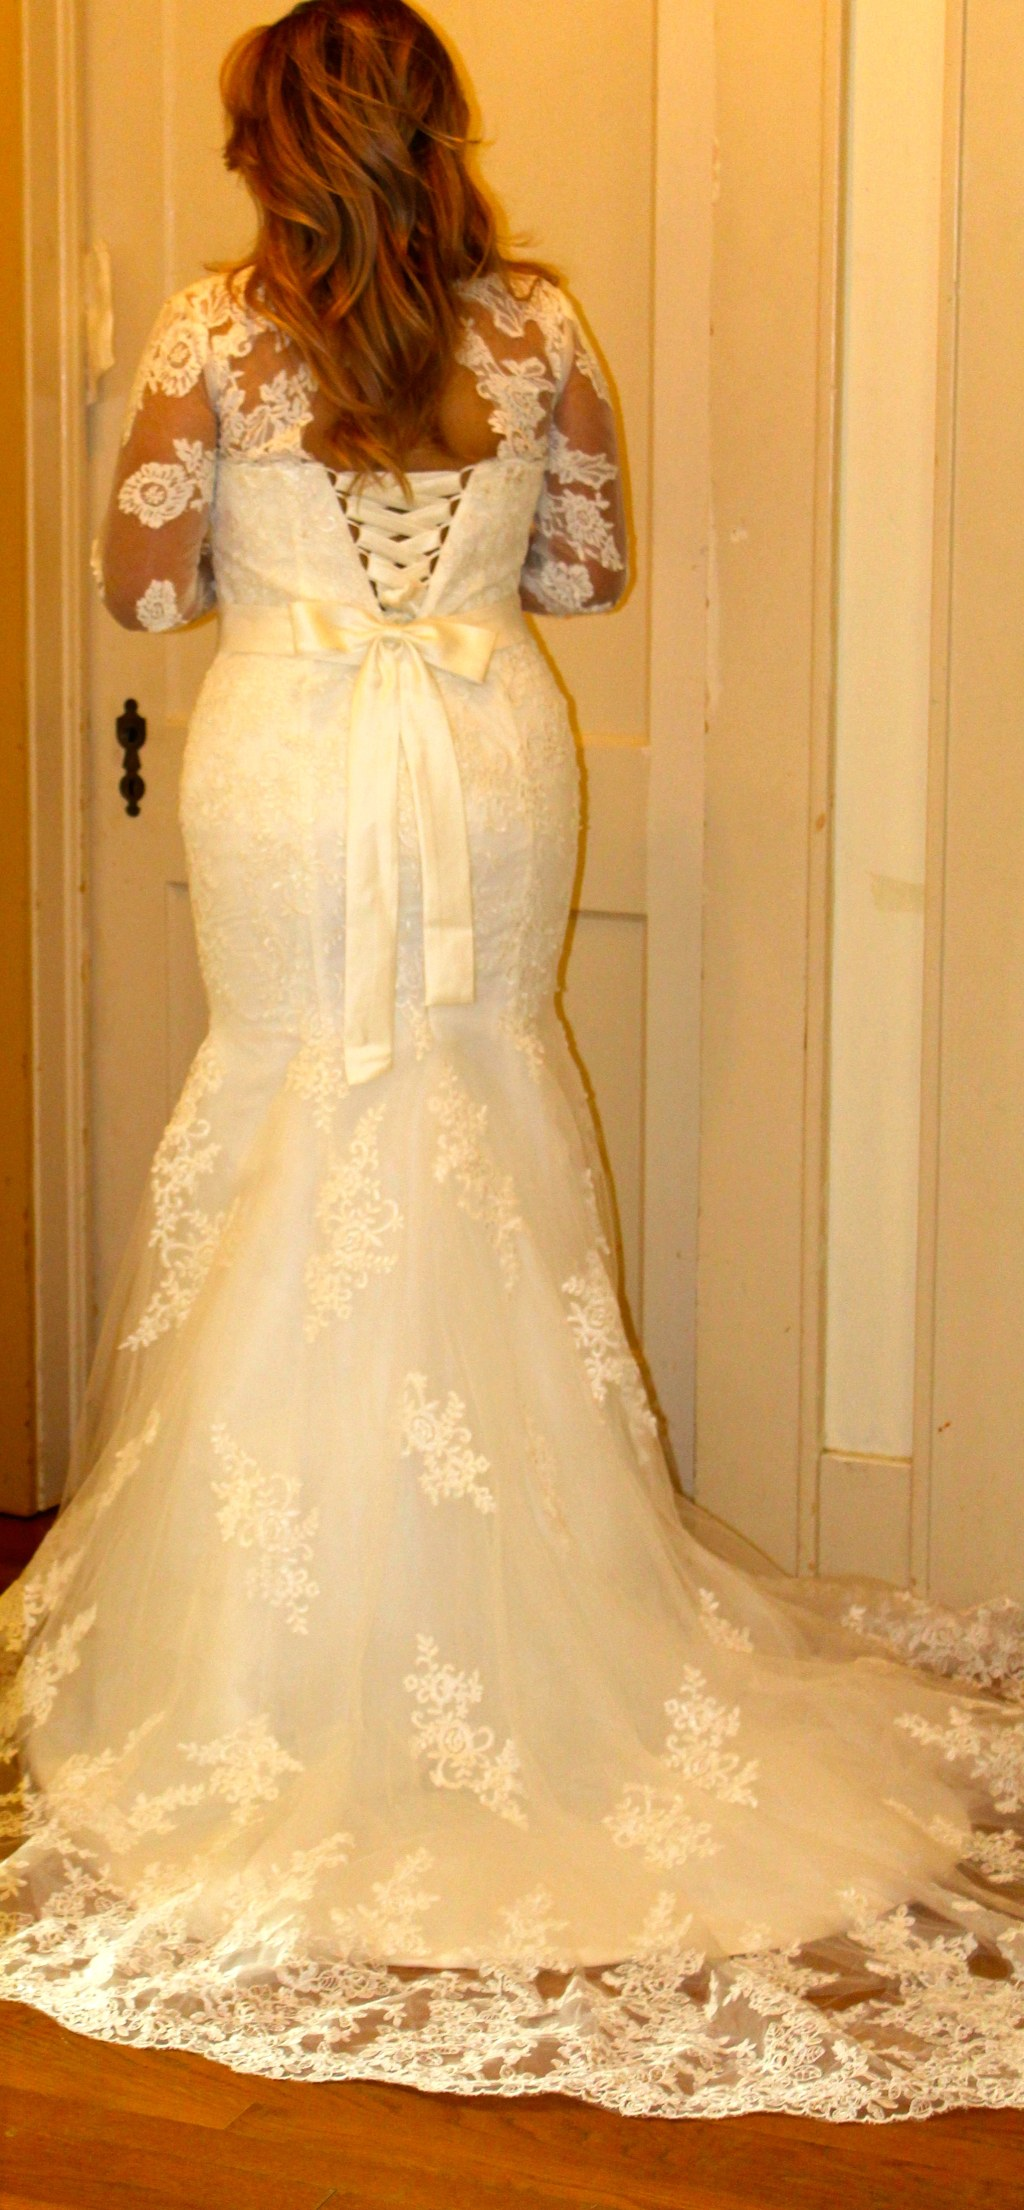 Marisol's Long Sleeve Vintage Wedding Gown White/Ivory